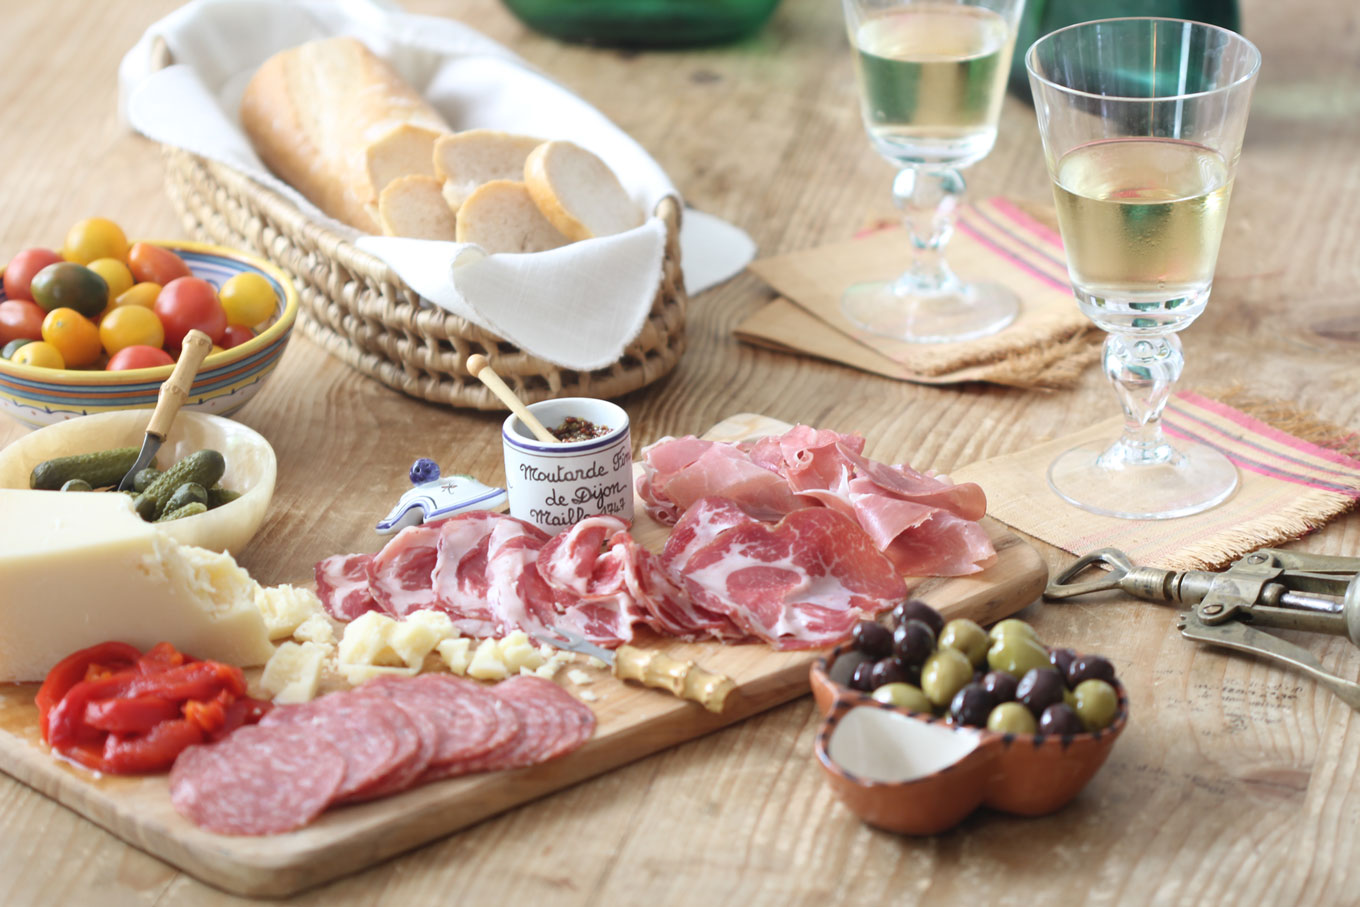 Ridgely Brode prepares a quick, easy and delicious Charcuterie Board with everything she found at the local grocery store on her blog, Ridgely's Radar.